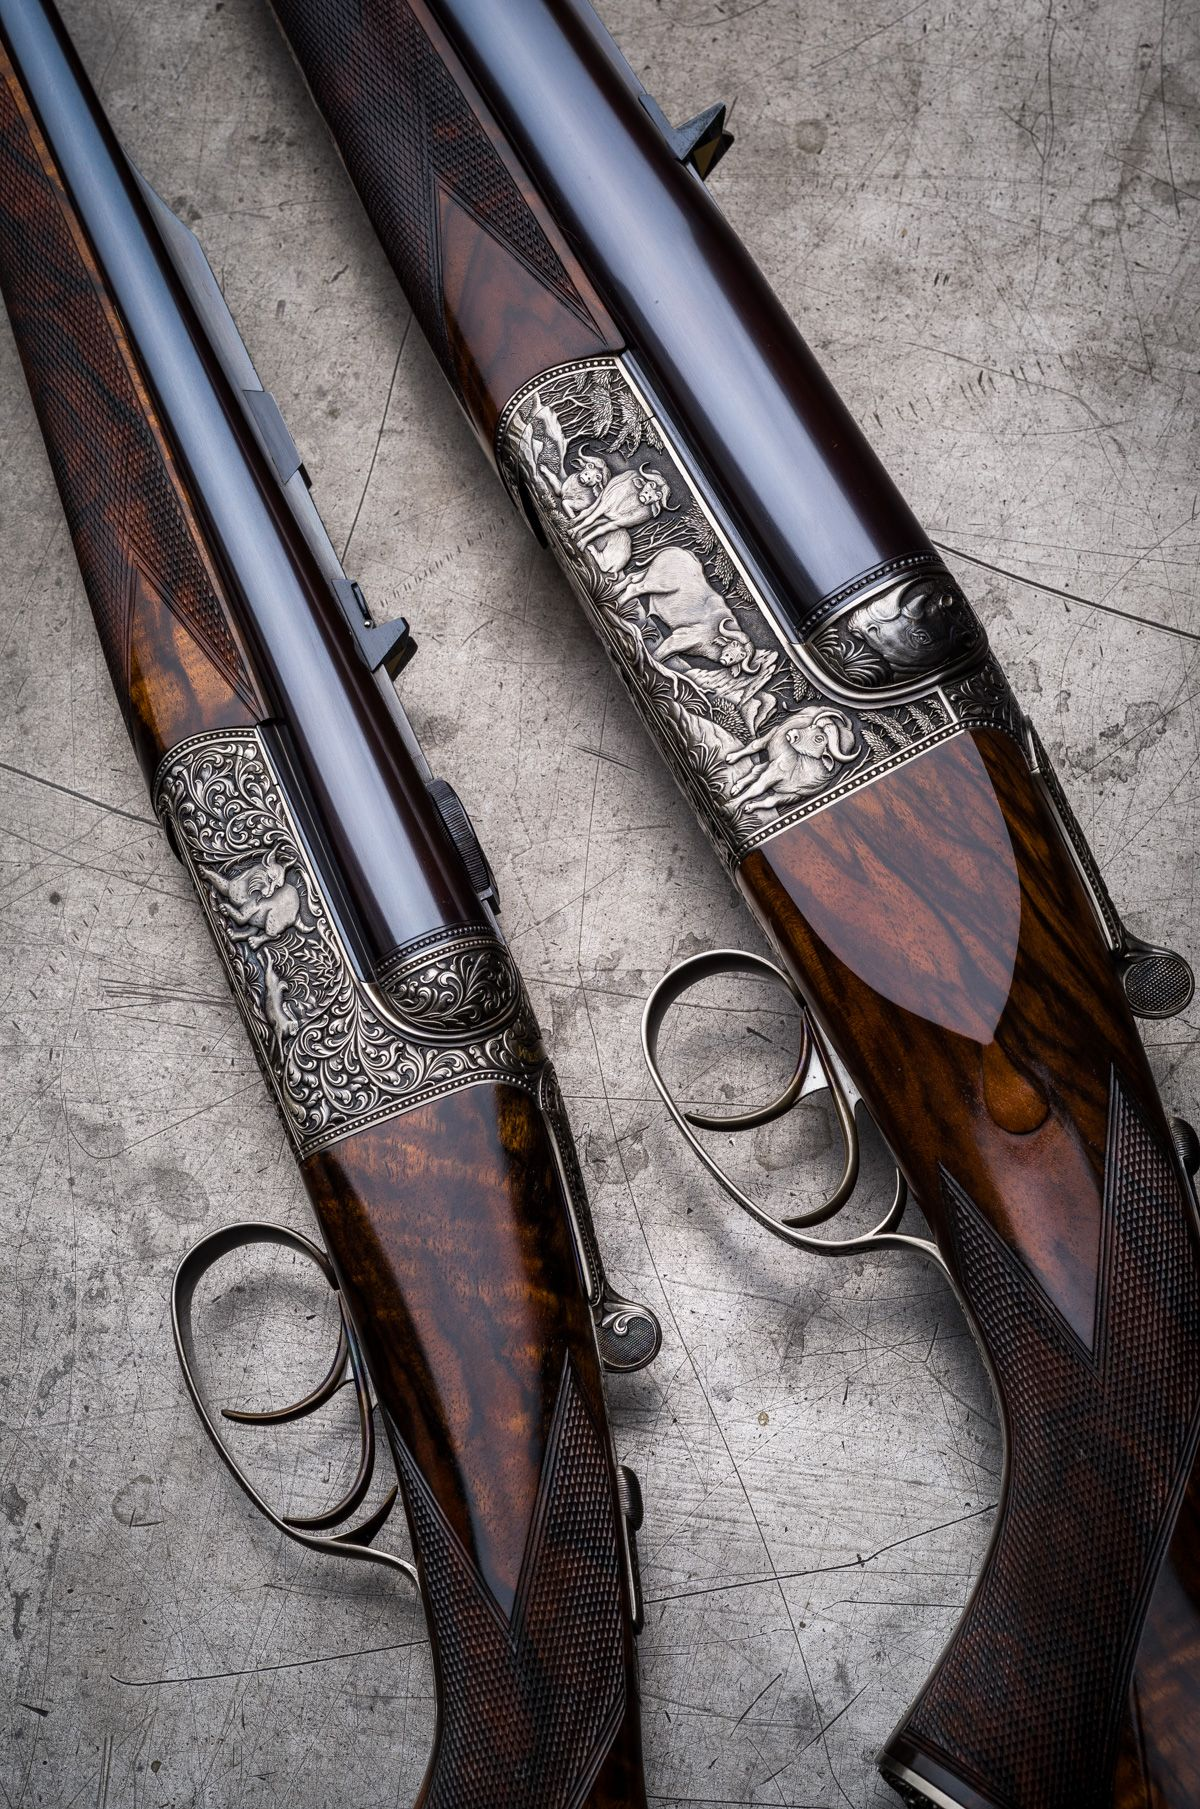 Westley Richards Droplocks in .600 and .243. Save those thumbs & bucks w/ free shipping on this magloader I purchased mine http://www.amazon.com/shops/raeind   No more leaving the last round out because it is too hard to get in. And you will load them faster and easier, to maximize your shooting enjoyment.